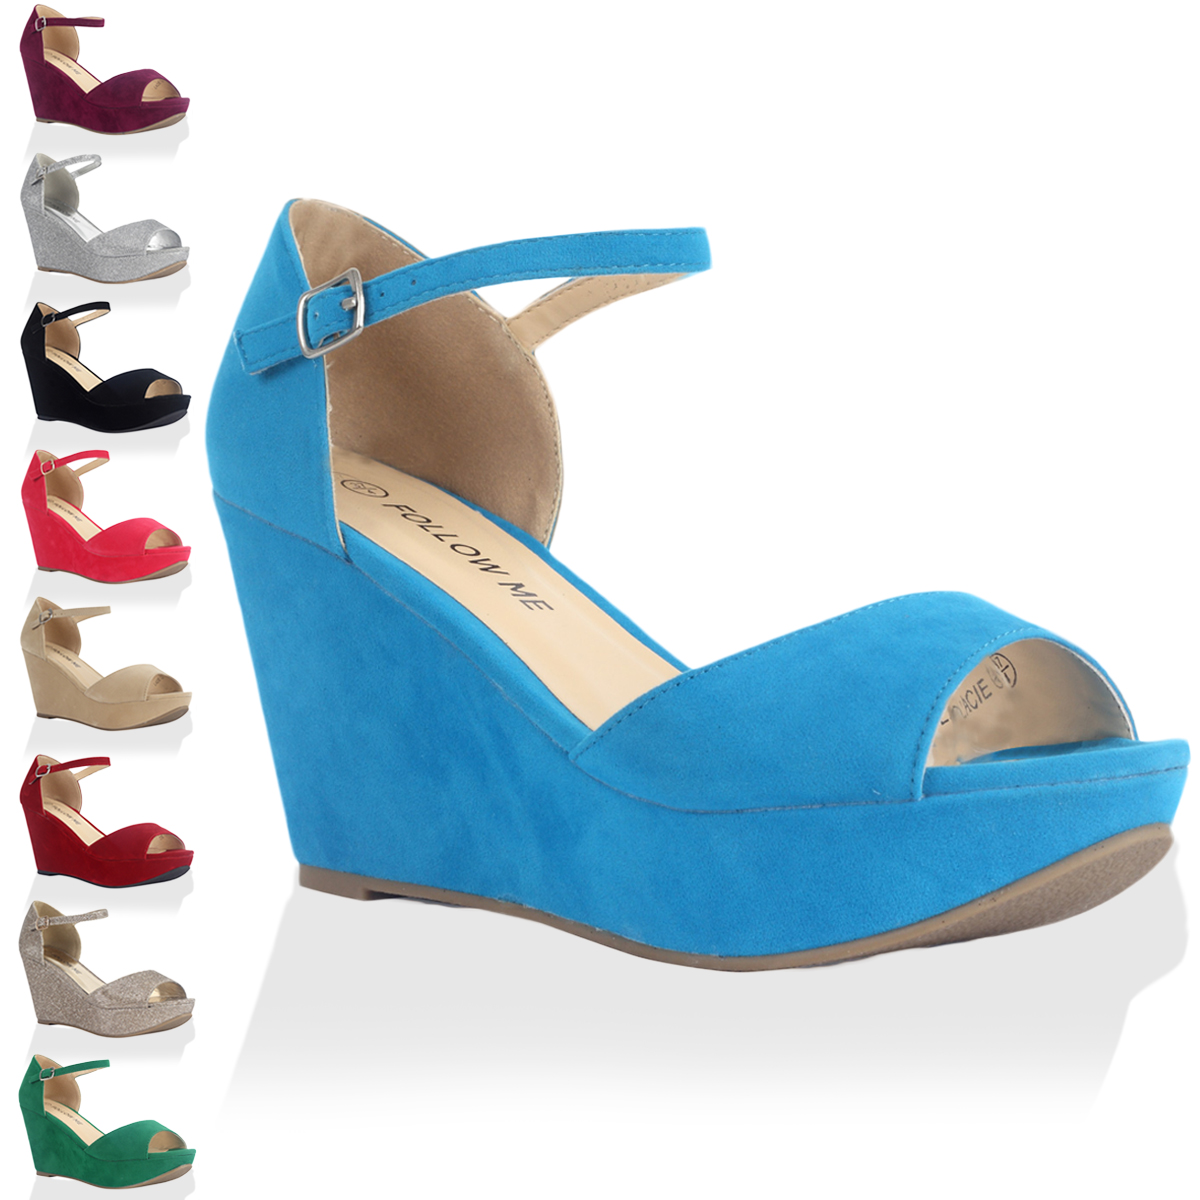 50I WOMENS ANKLE STRAP LADIES PEEP TOE PLATFORM HIGH WEDGE HEEL SHOES SIZE 4-9